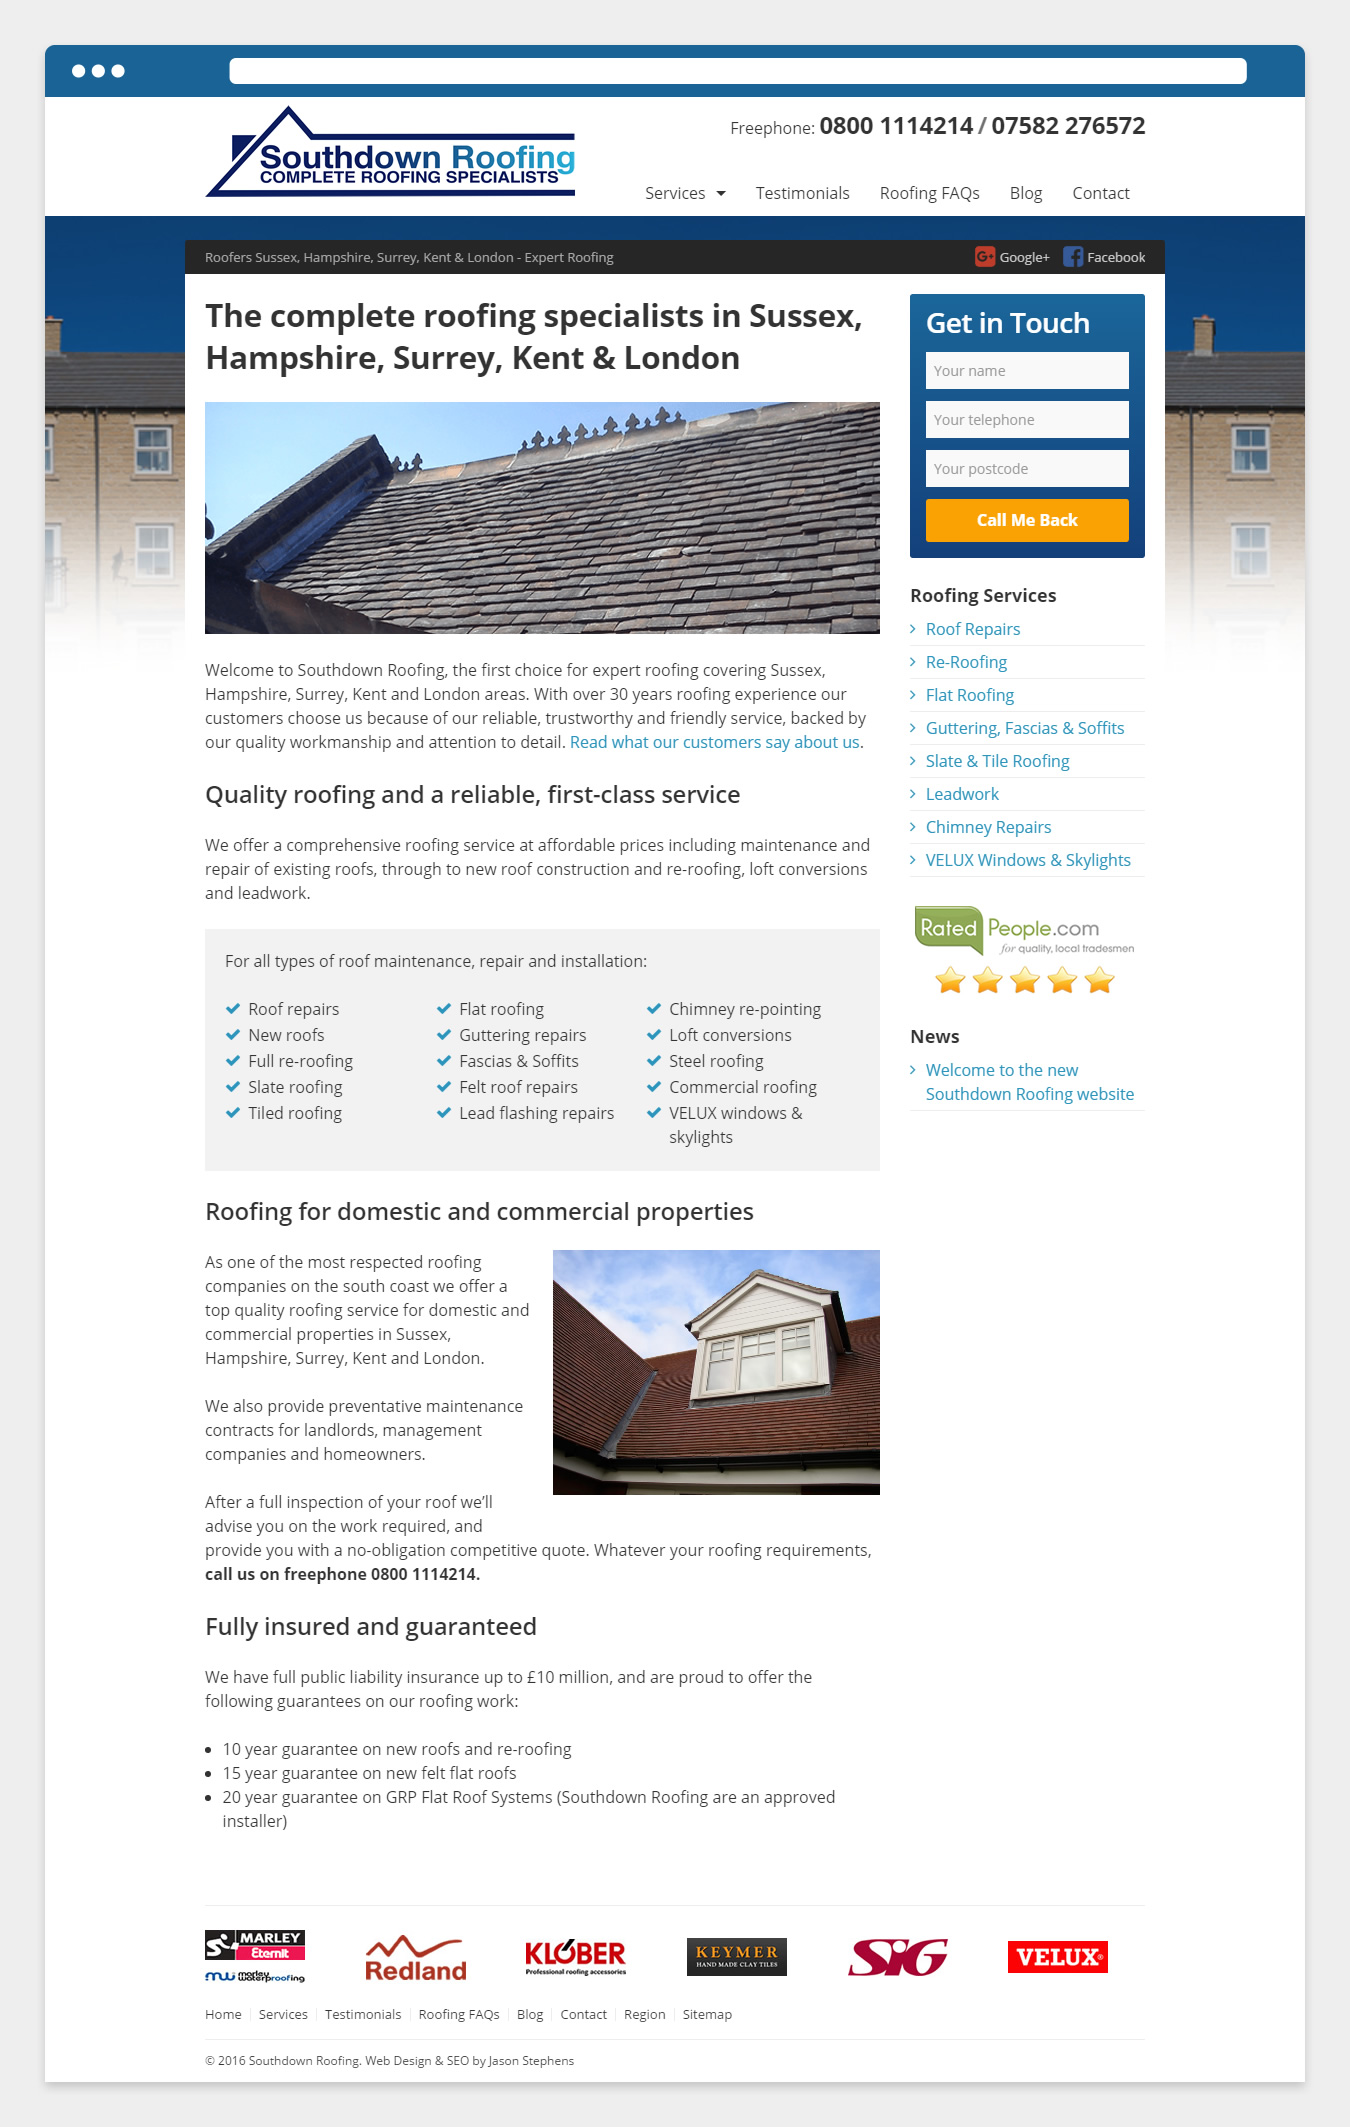 The new Southdown Roofing website Home page